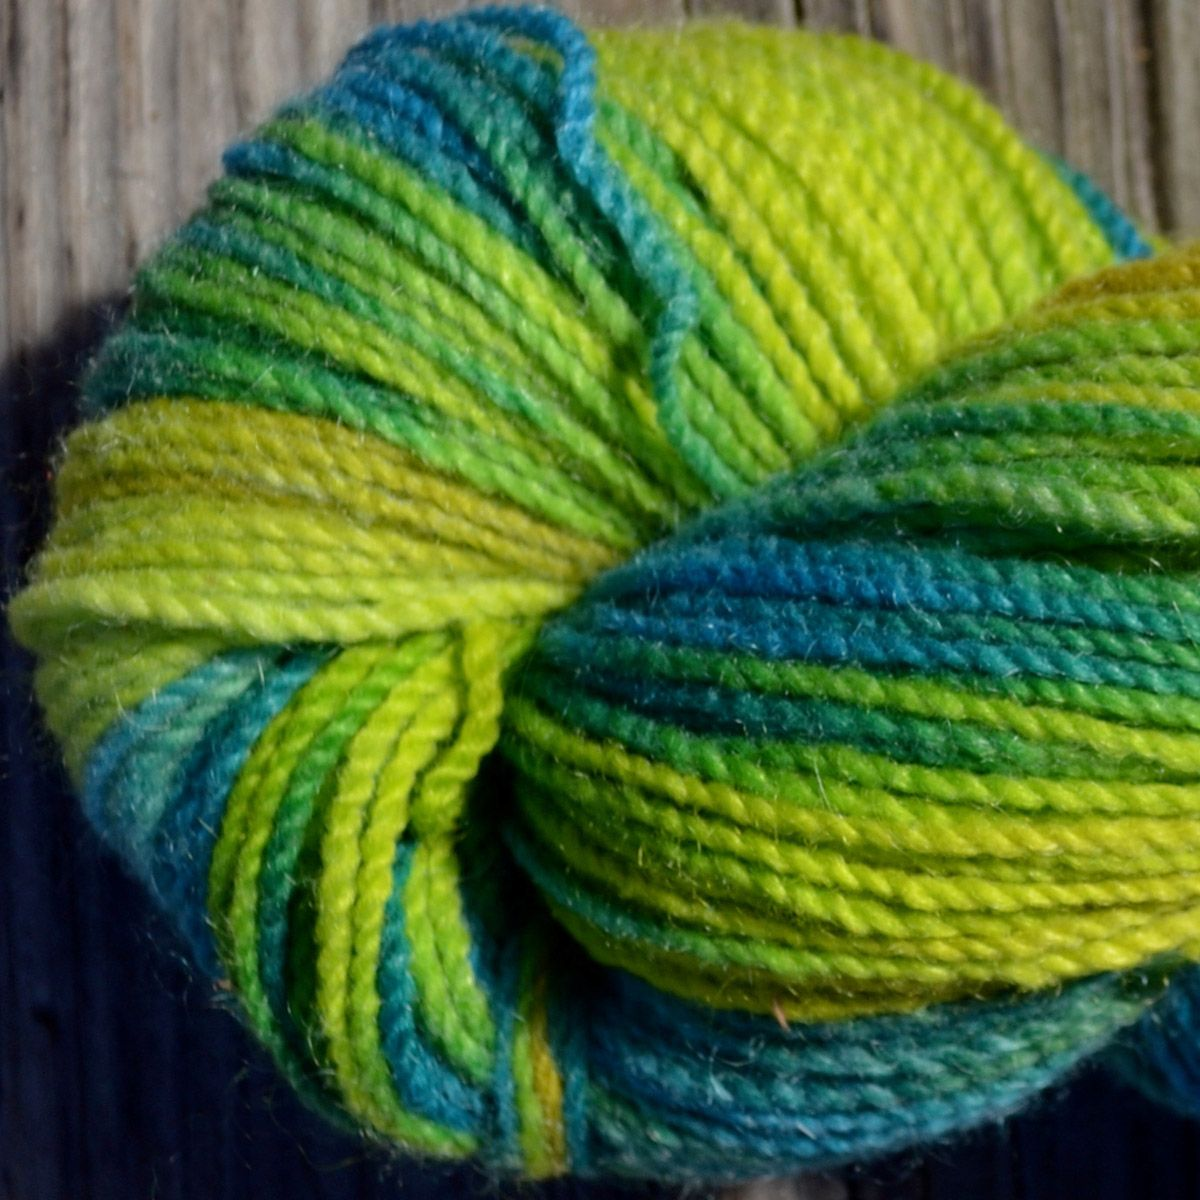 UnderWater SunLight Hand-Painted Yarn